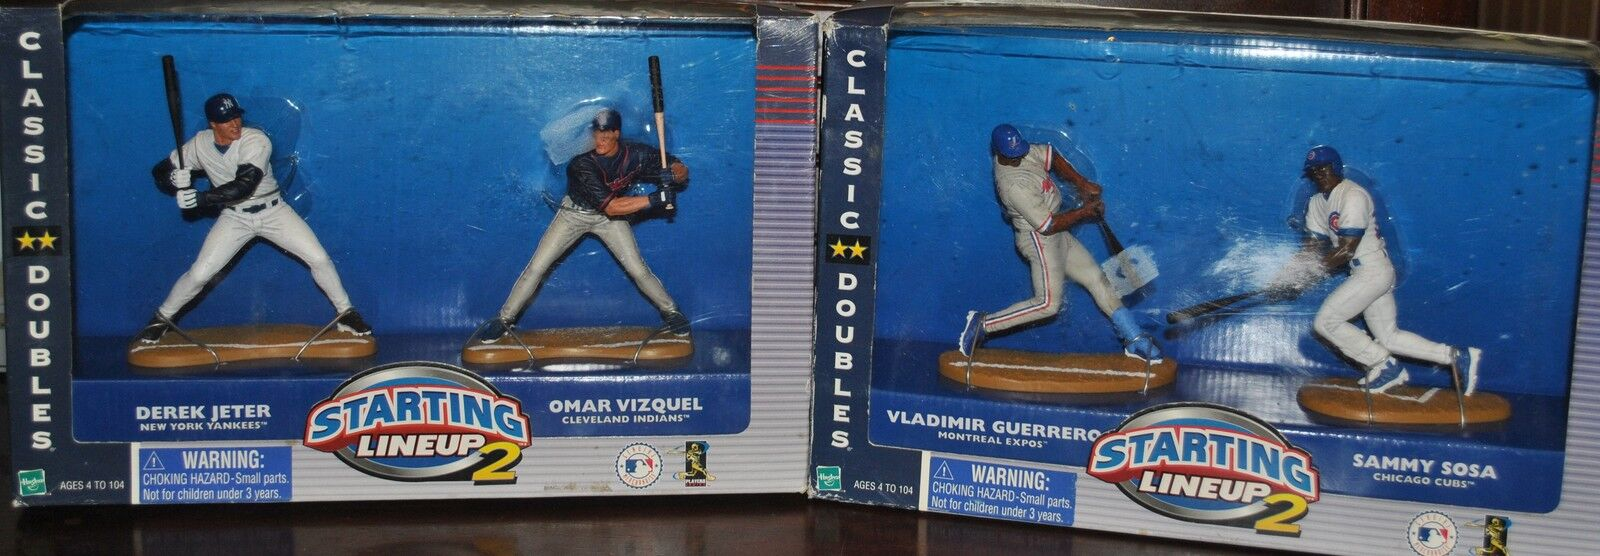 RARE CLASSIC DOUBLES STARTING LINEUP 2 JETER WITH VIZQUEL & GUERRERO WITH SOSA